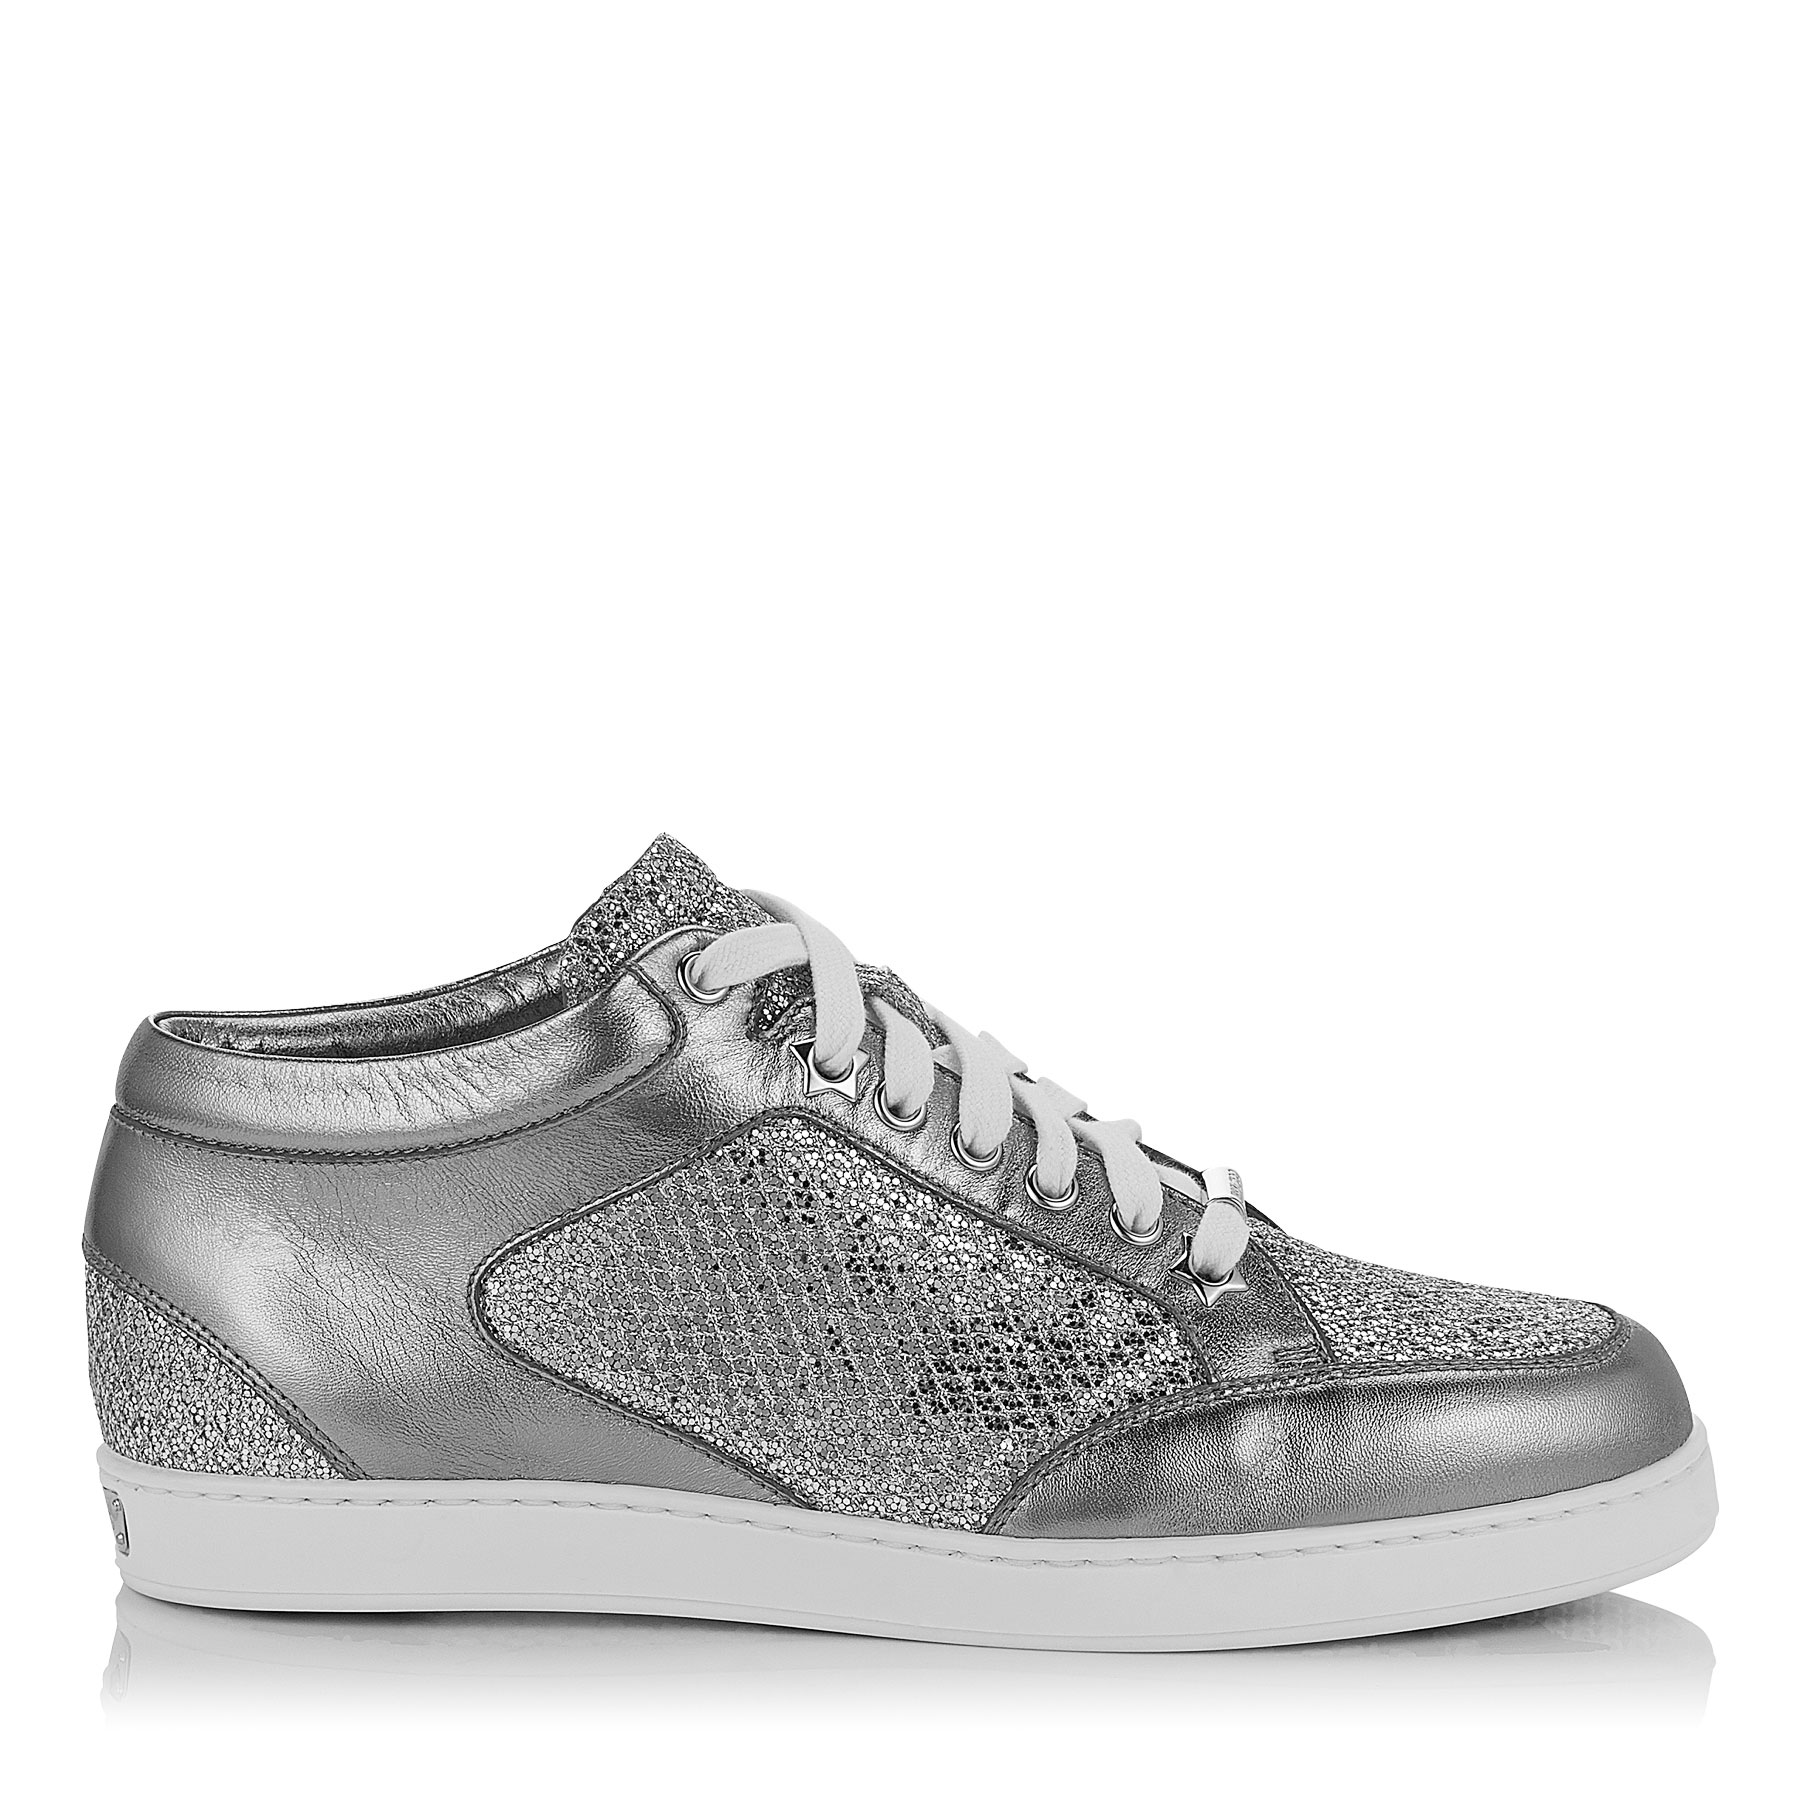 9889f098eb4c MIAMI Silver Glitter Fabric Metallic Nappa Low Top Trainers by Jimmy Choo